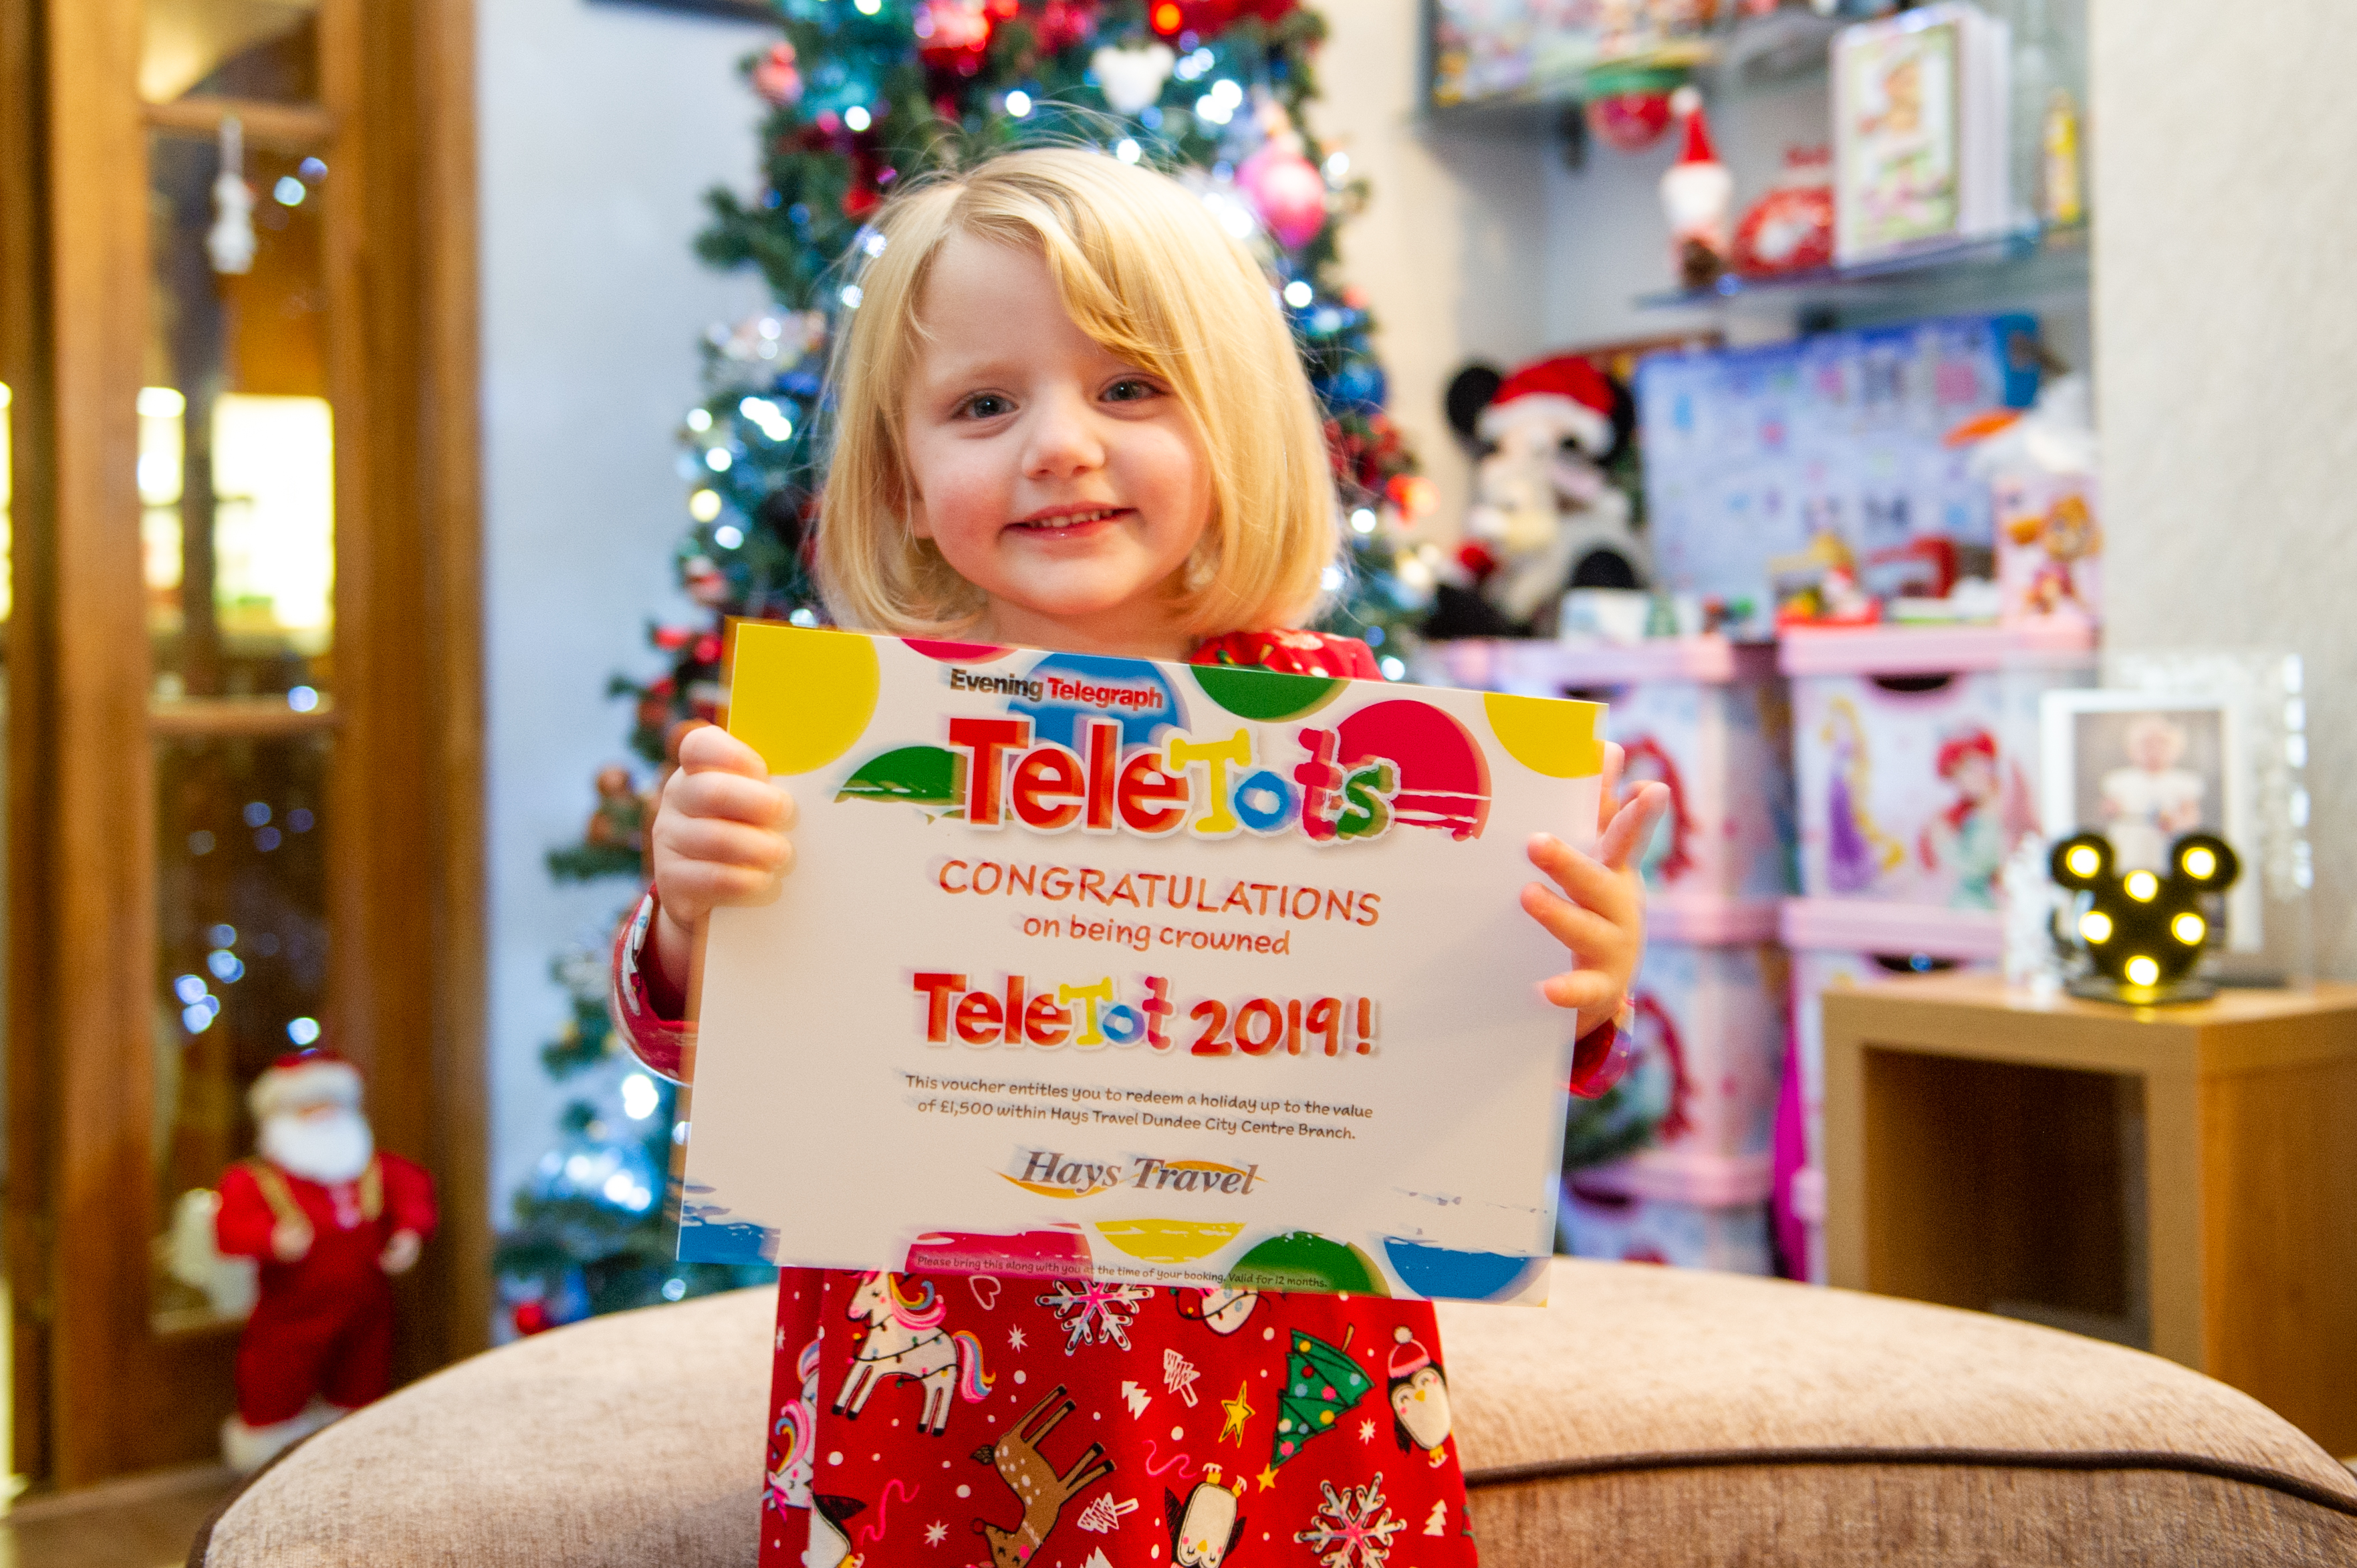 TeleTots winner, 2-year-old Mia Jarret.